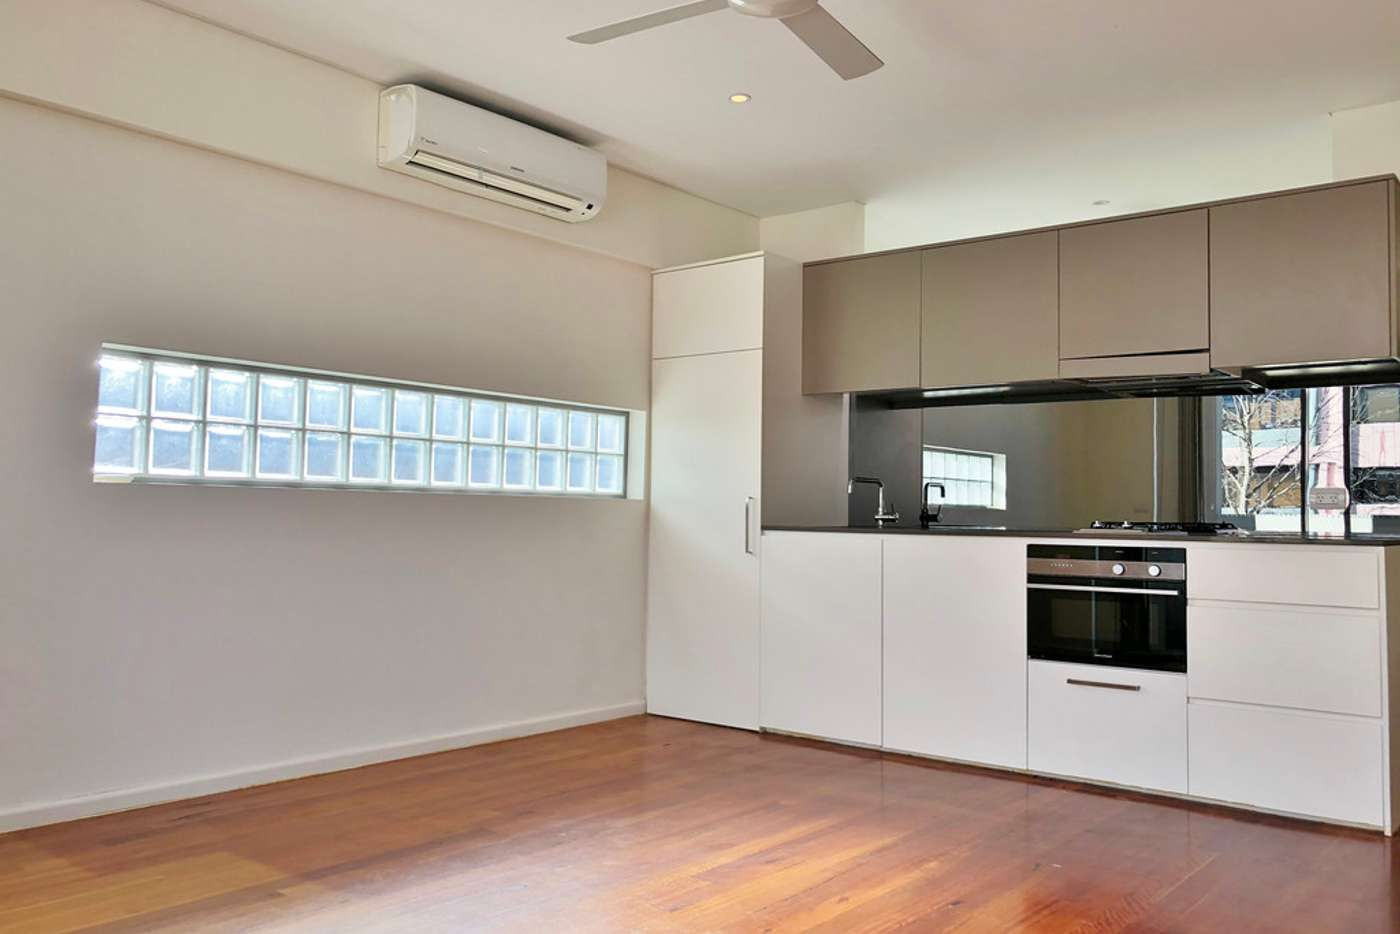 Main view of Homely apartment listing, 106/9-15 Ascot Street, Kensington NSW 2033